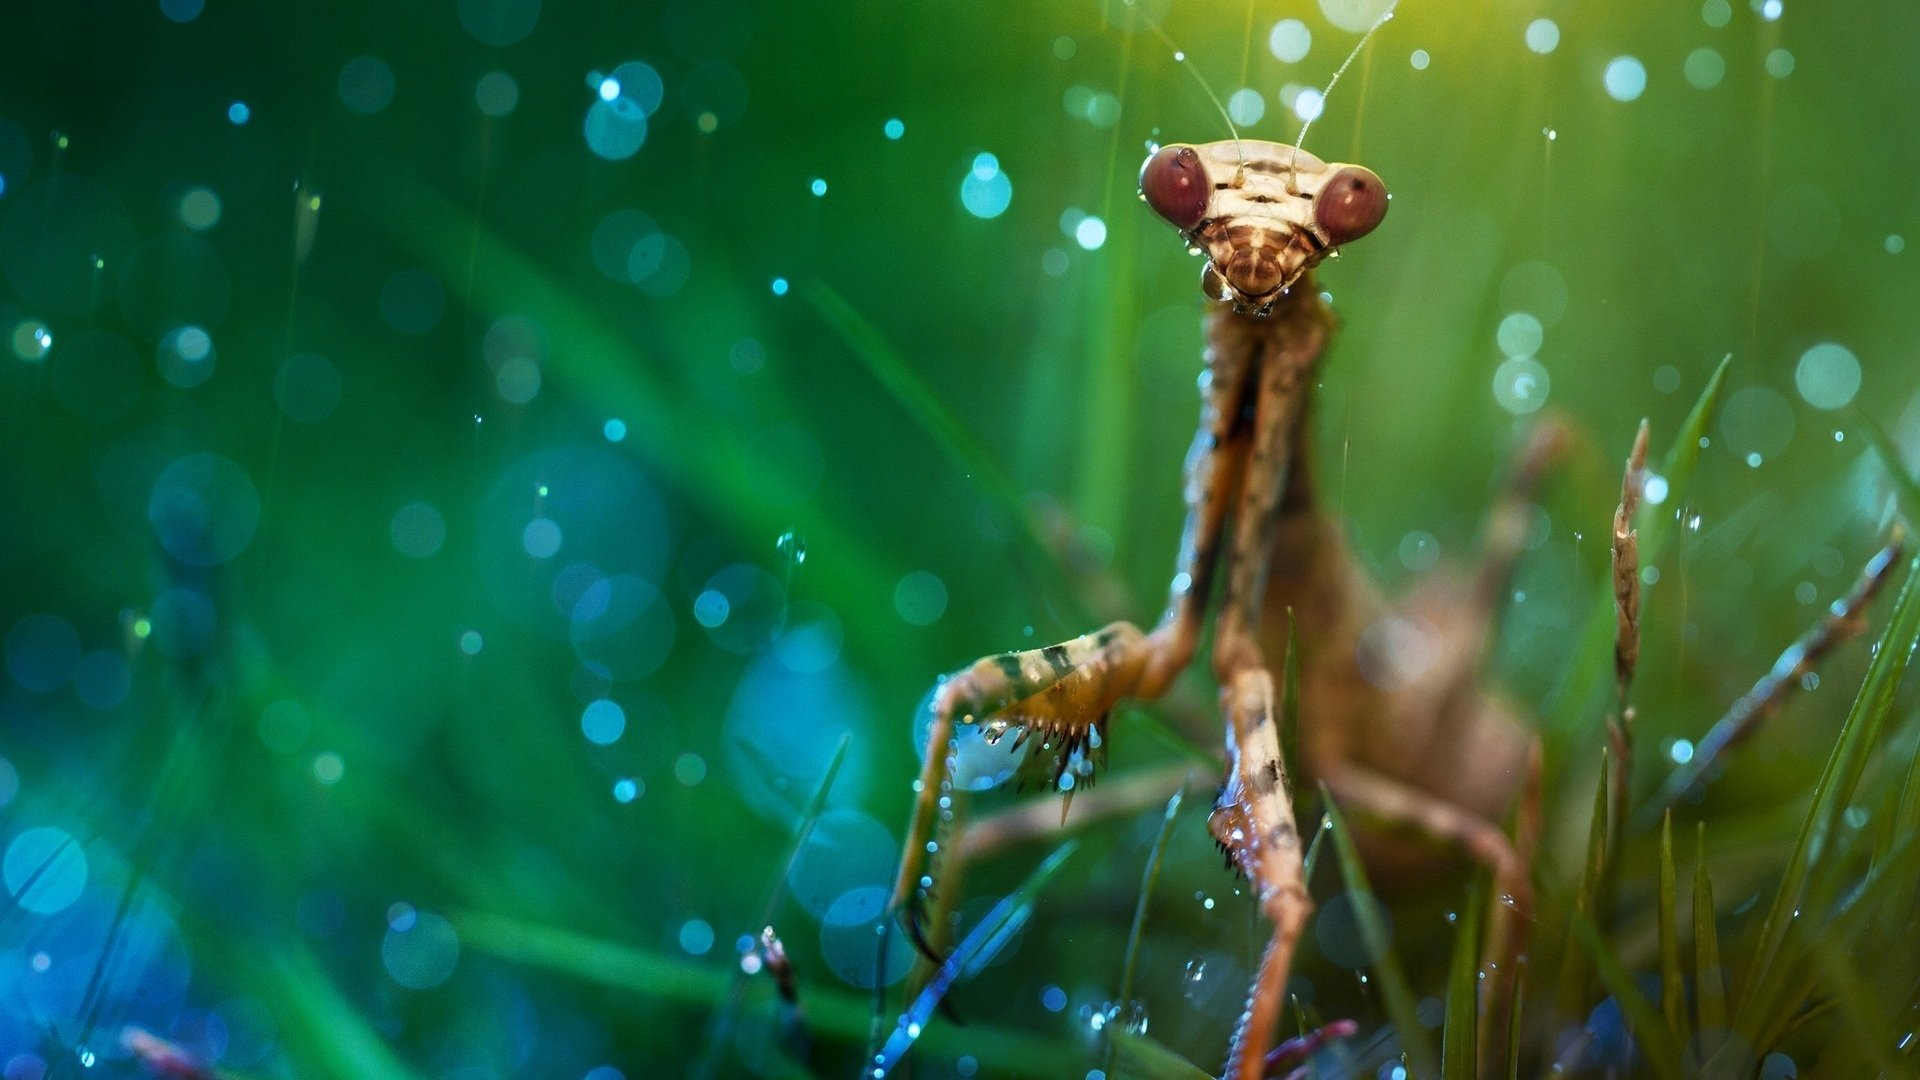 Praying Mantis Wallpaper